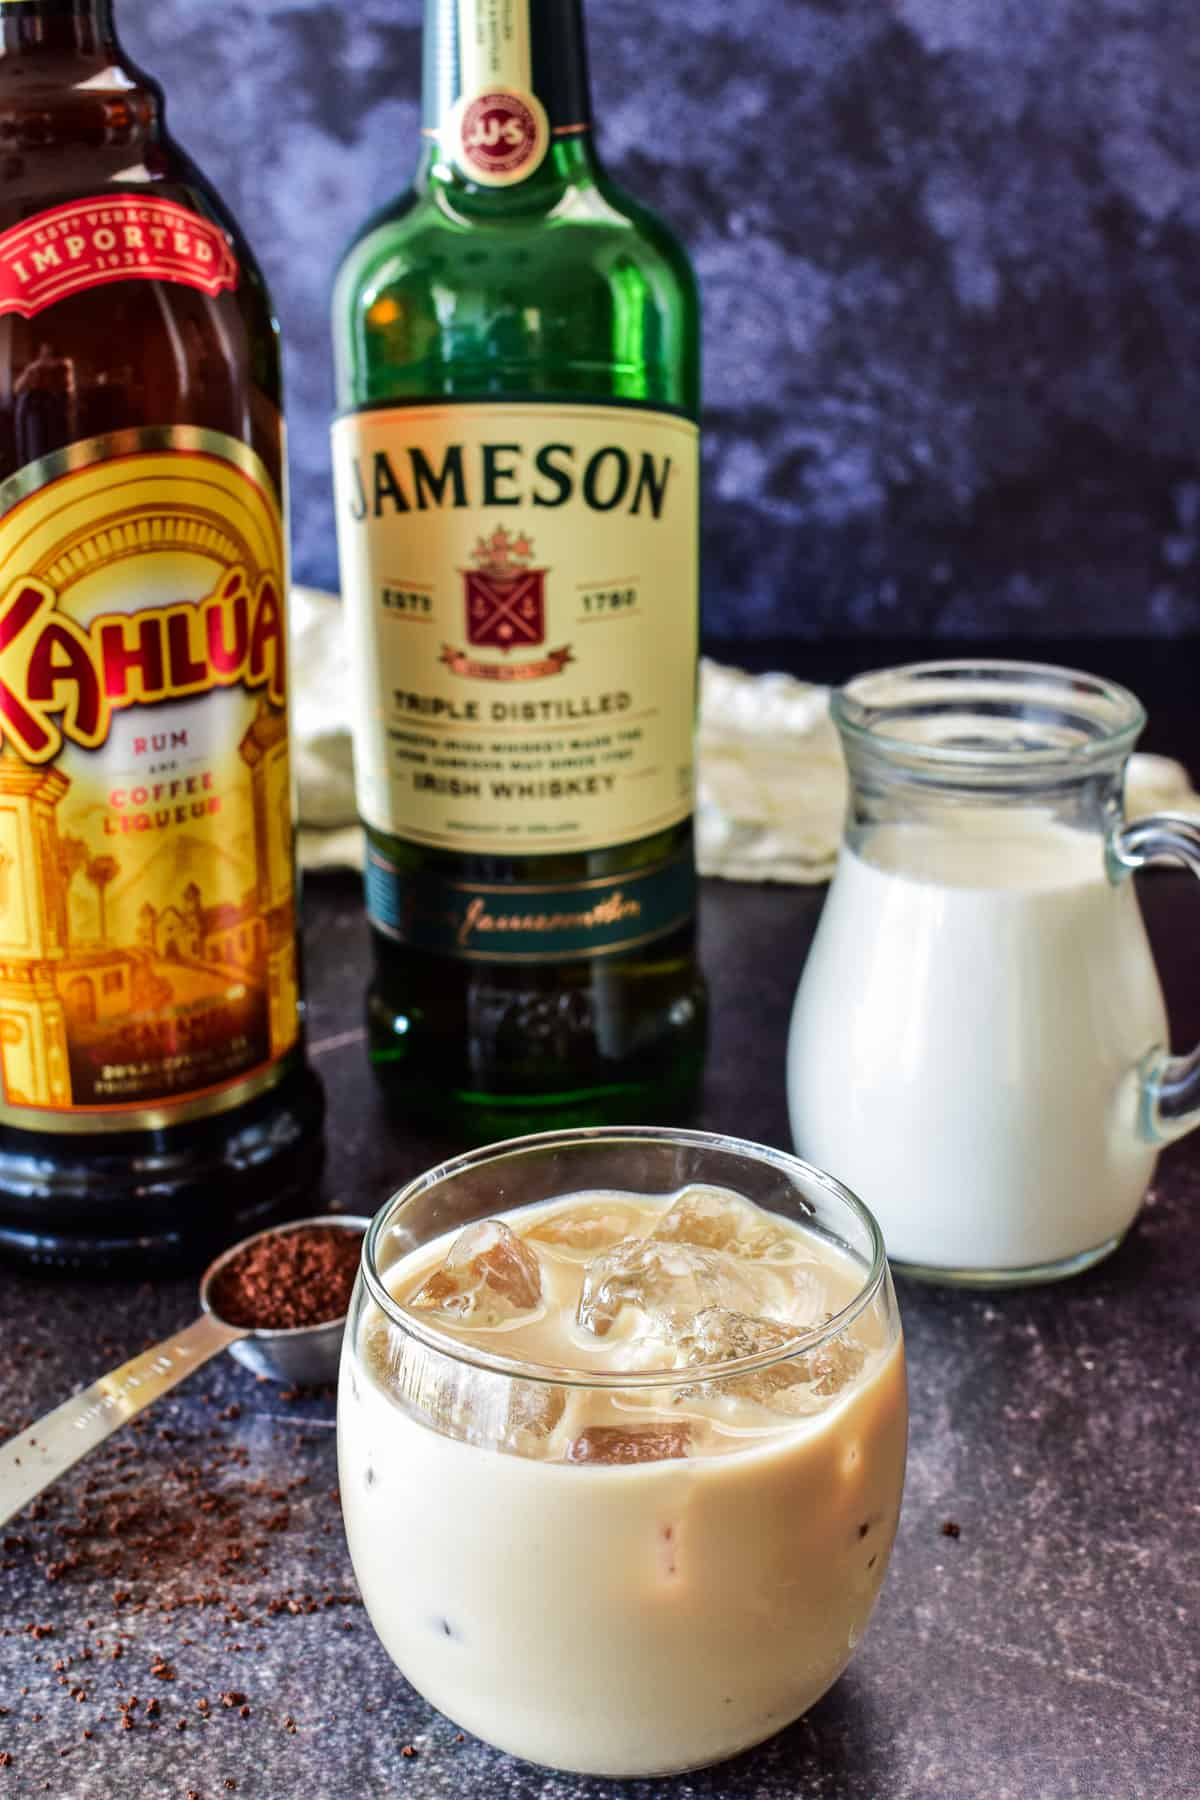 Irish Cream in glass with ingredients in the background